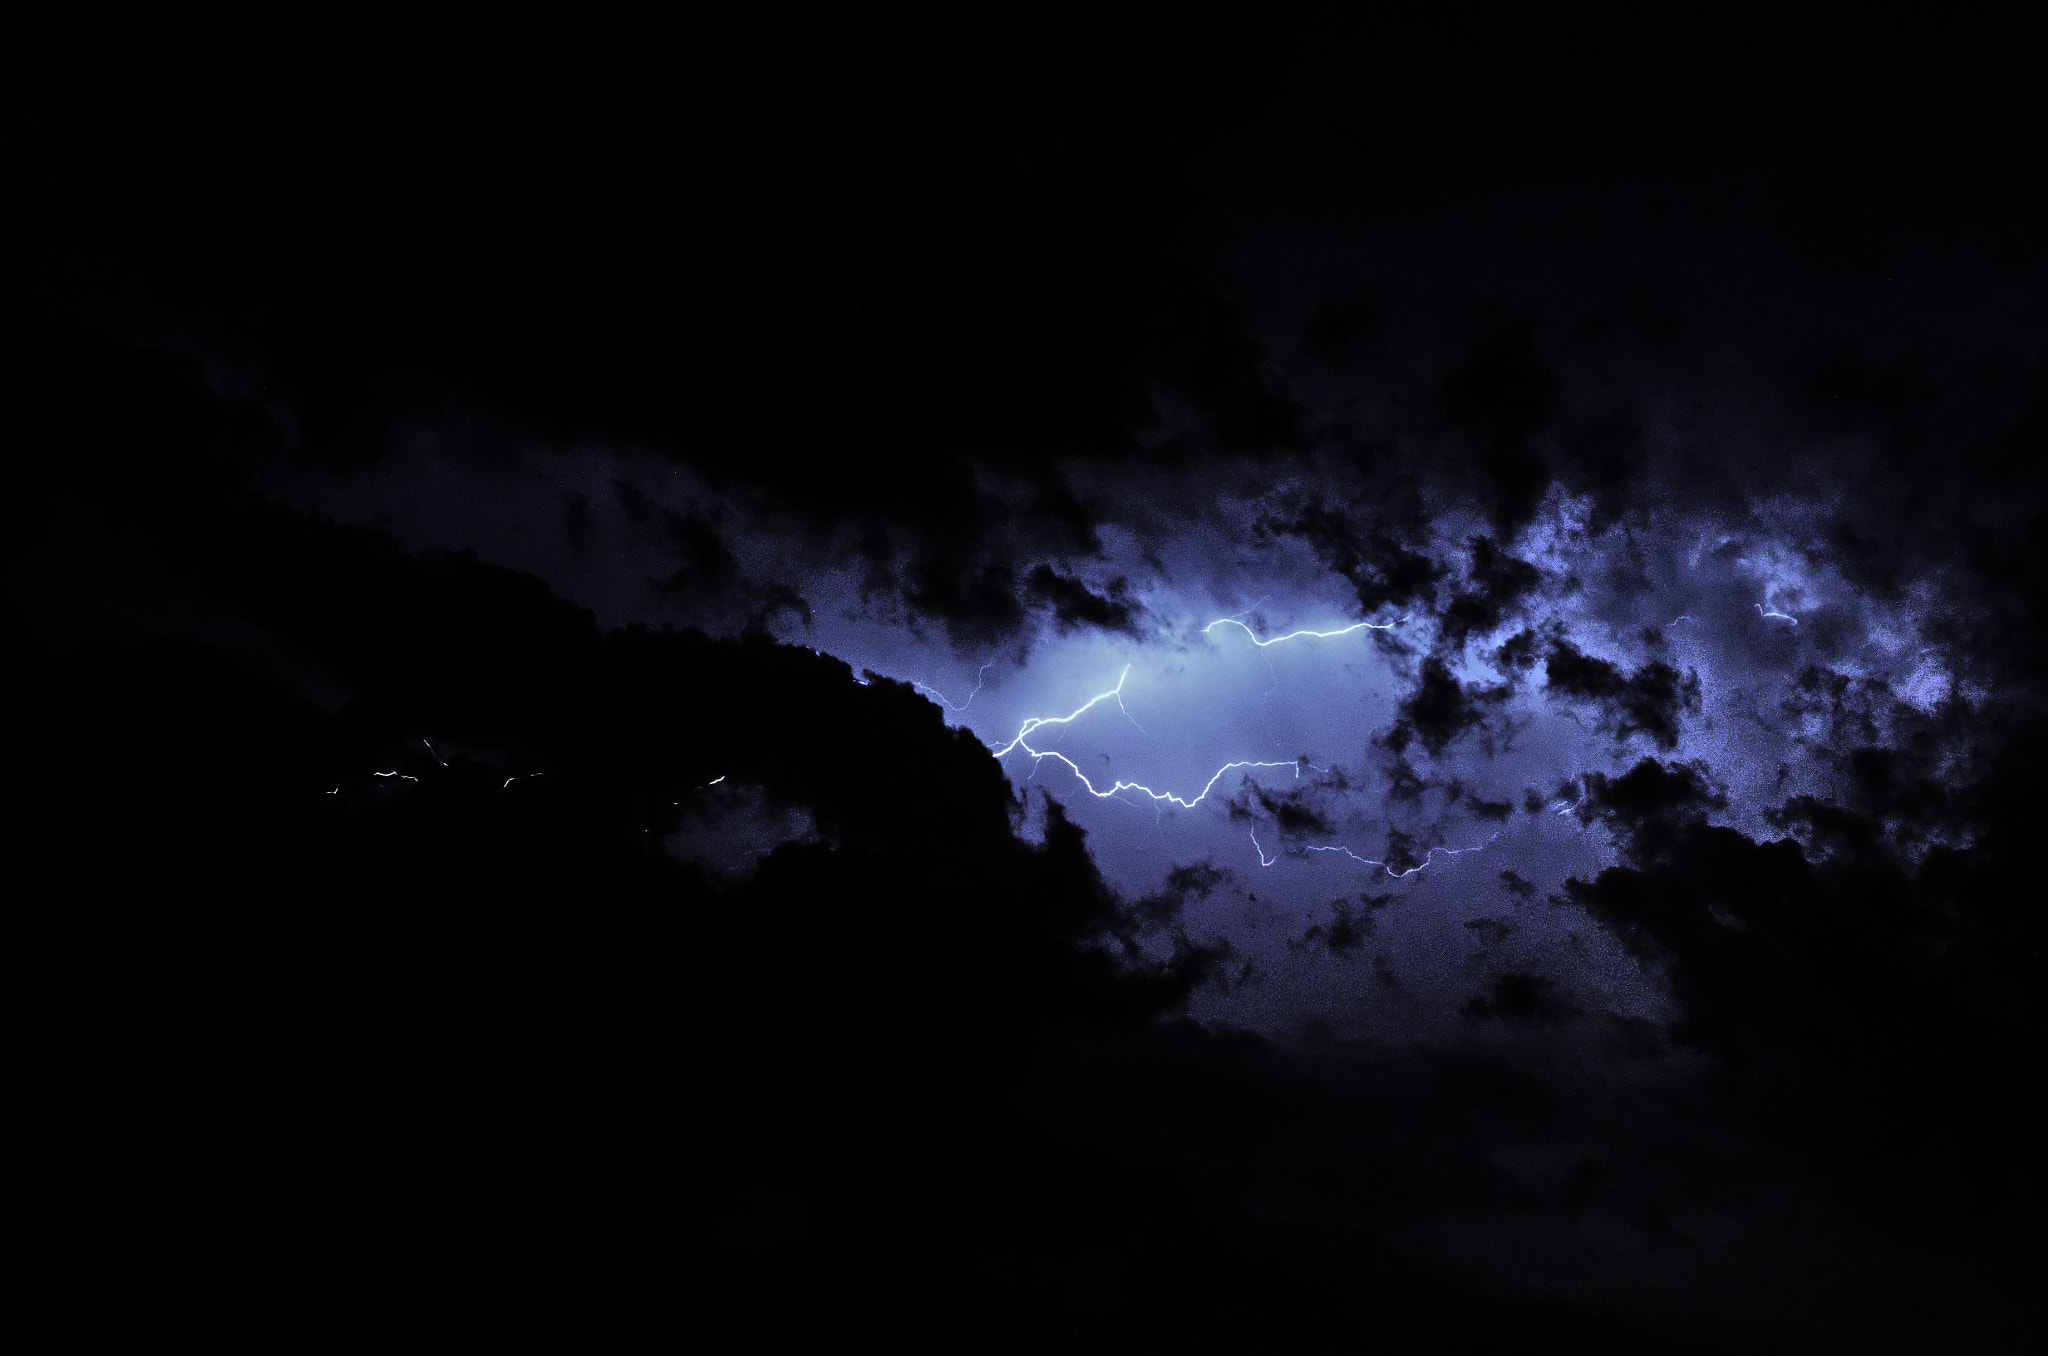 Photograph orage by joan koch on 500px